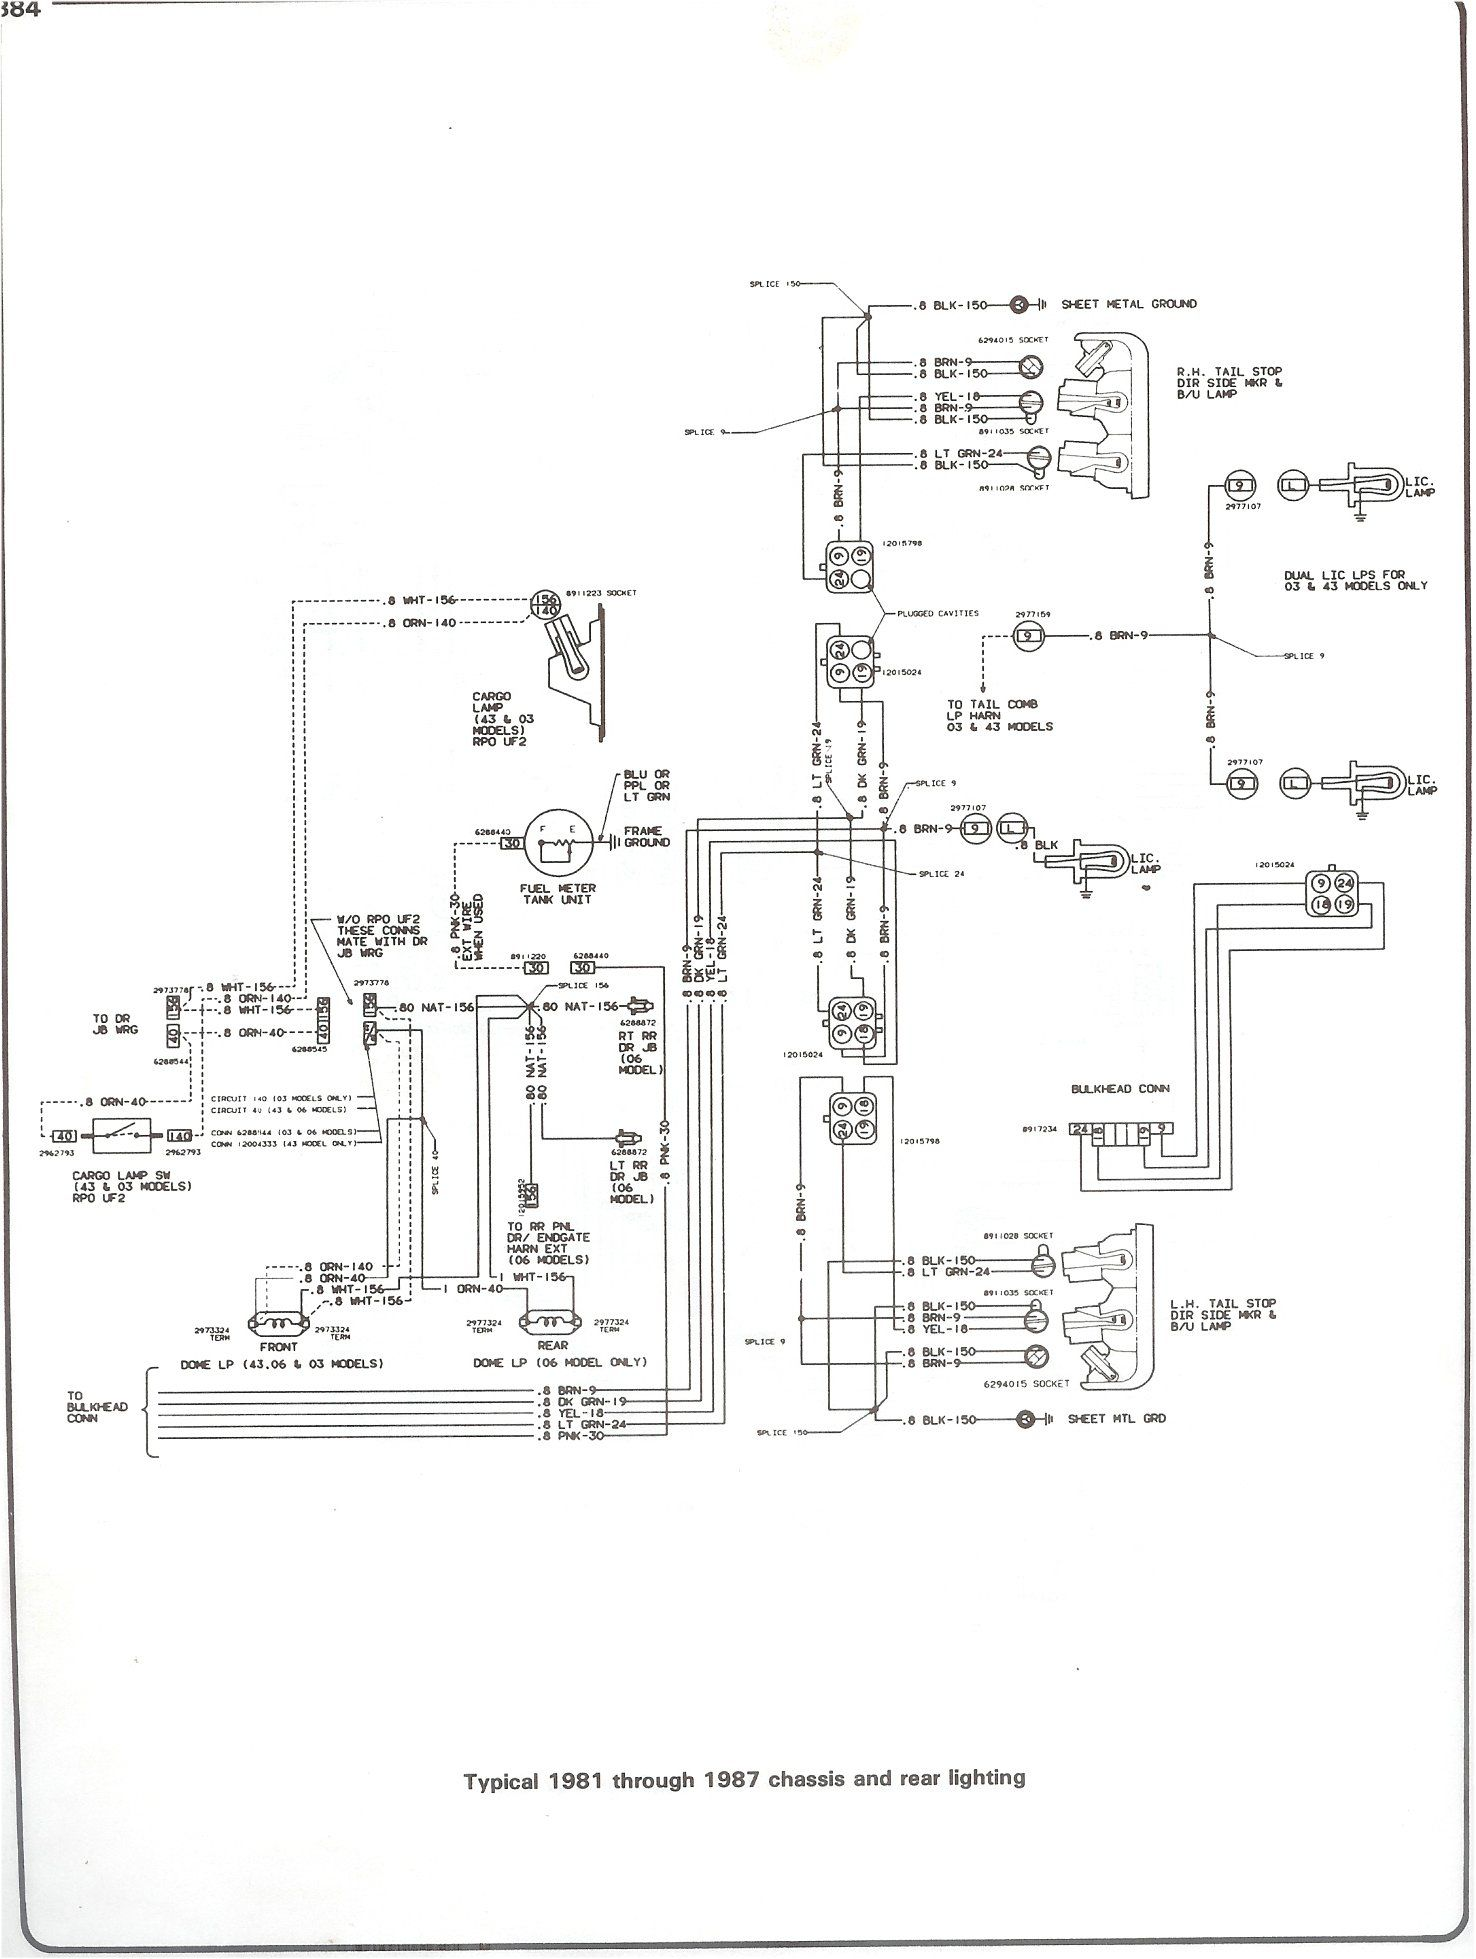 1987 chevy truck wiring diagram chevrolet v8 trucks 1981